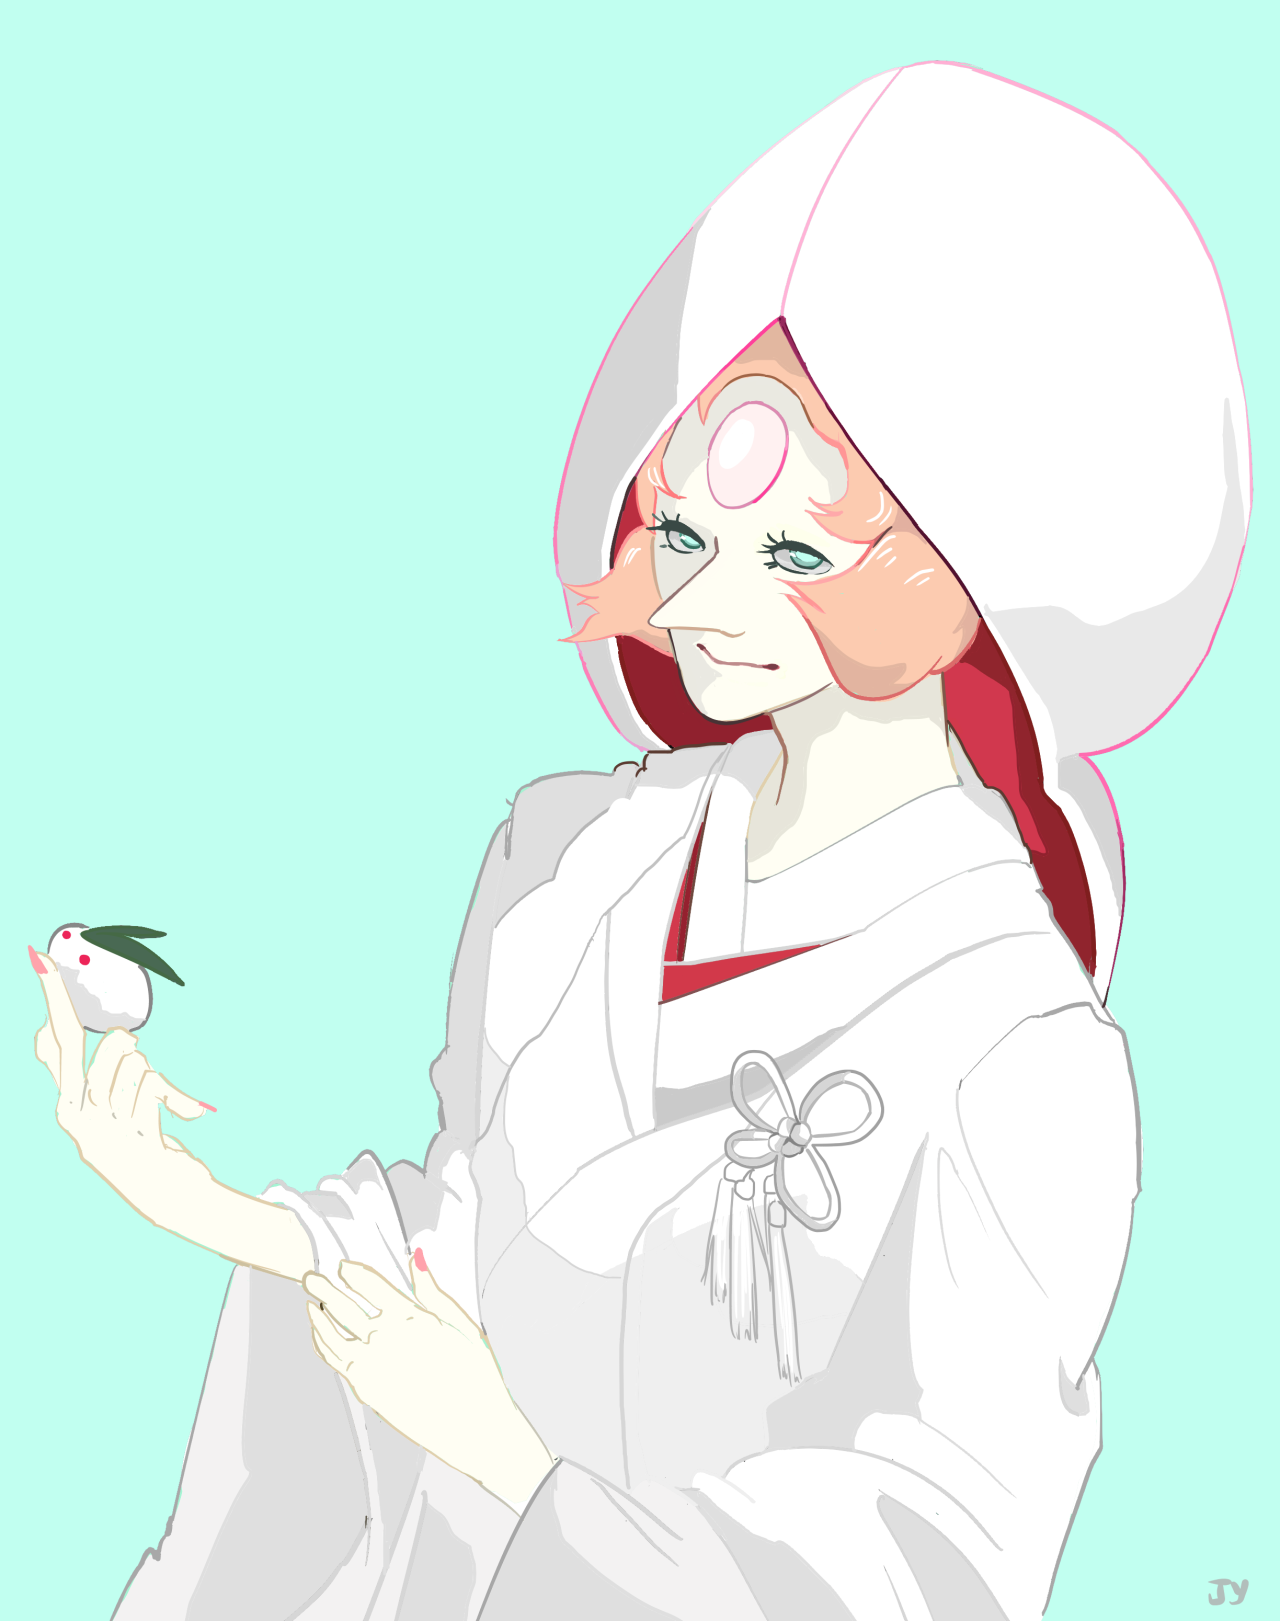 Shinto bride pearl for everyone to fall in love with today! If you blog about SU reblog this post so I can follow you! :) Follow me @merrymeprince for more of my art! I hope you enjoy your stay!